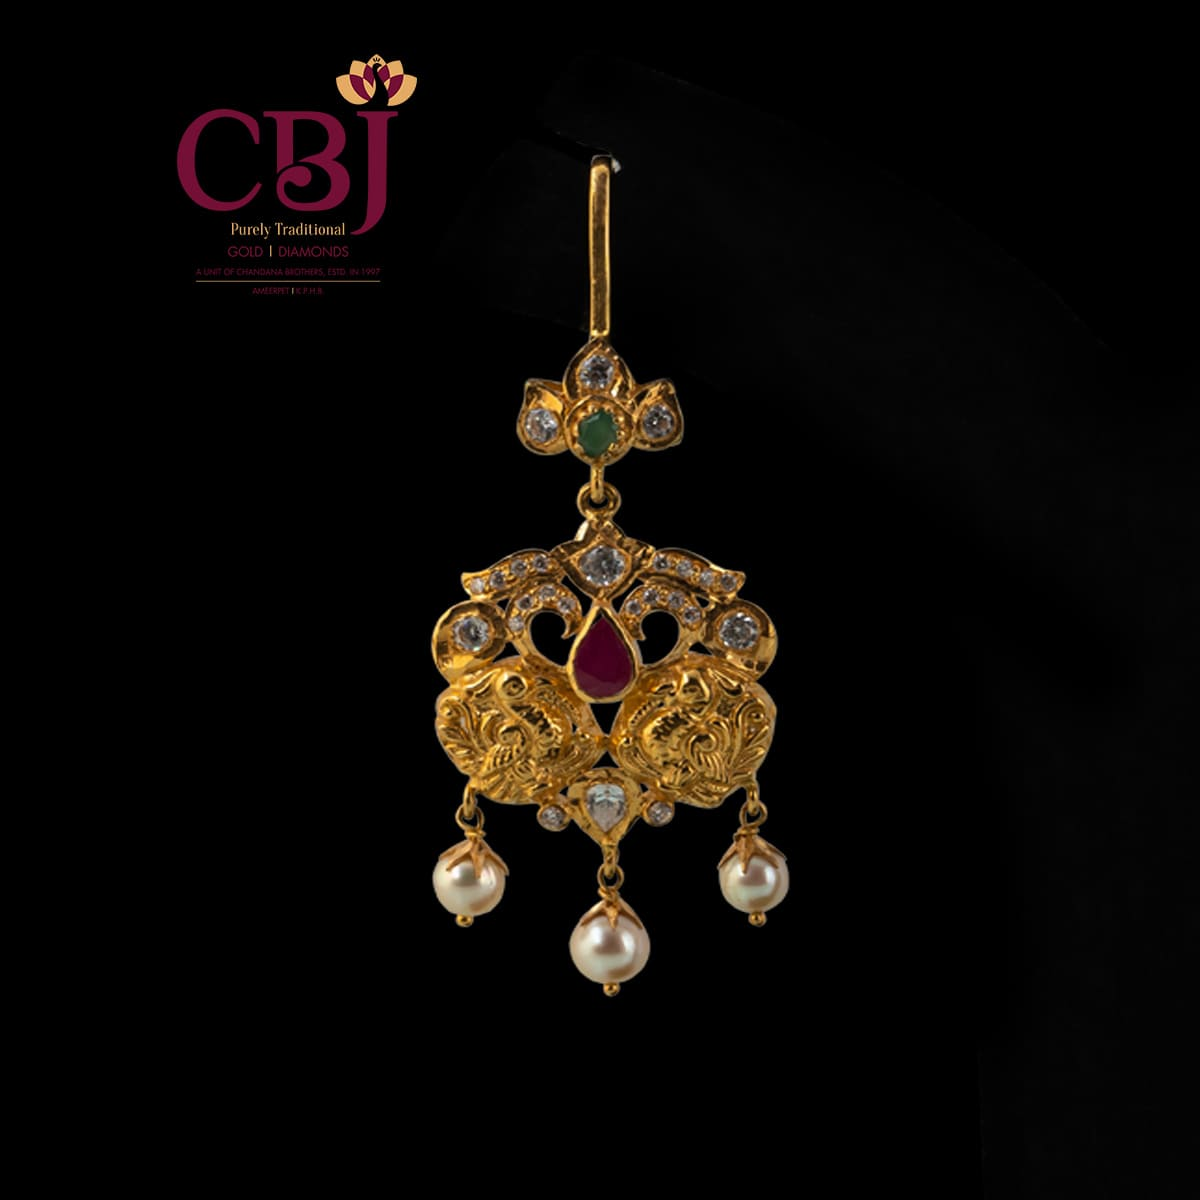 Maang tikka brightened in texture, accompanied by cubic zirconia.